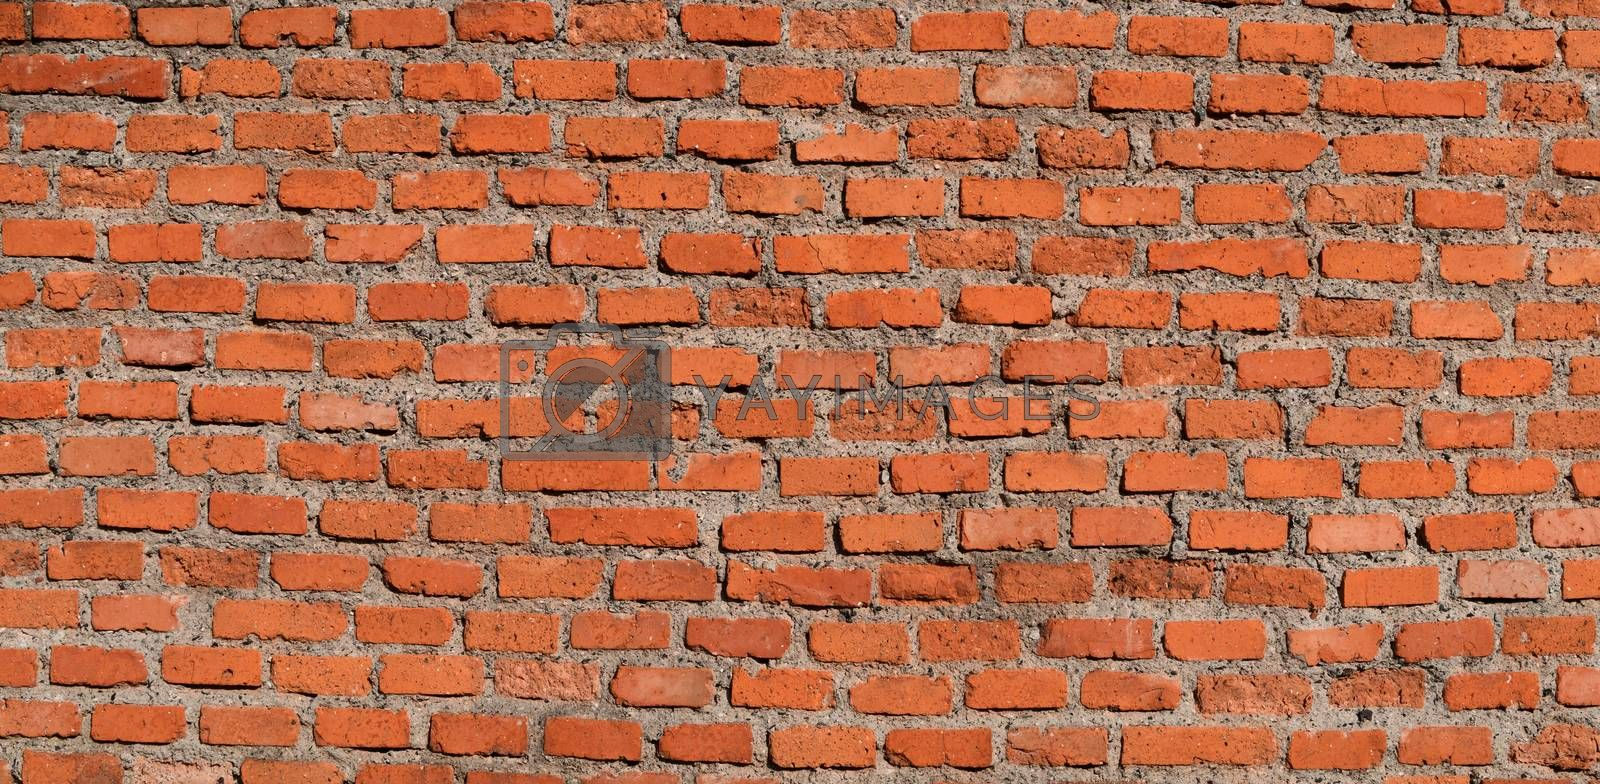 The red brick wall, rough and irregular background. Brick texture.